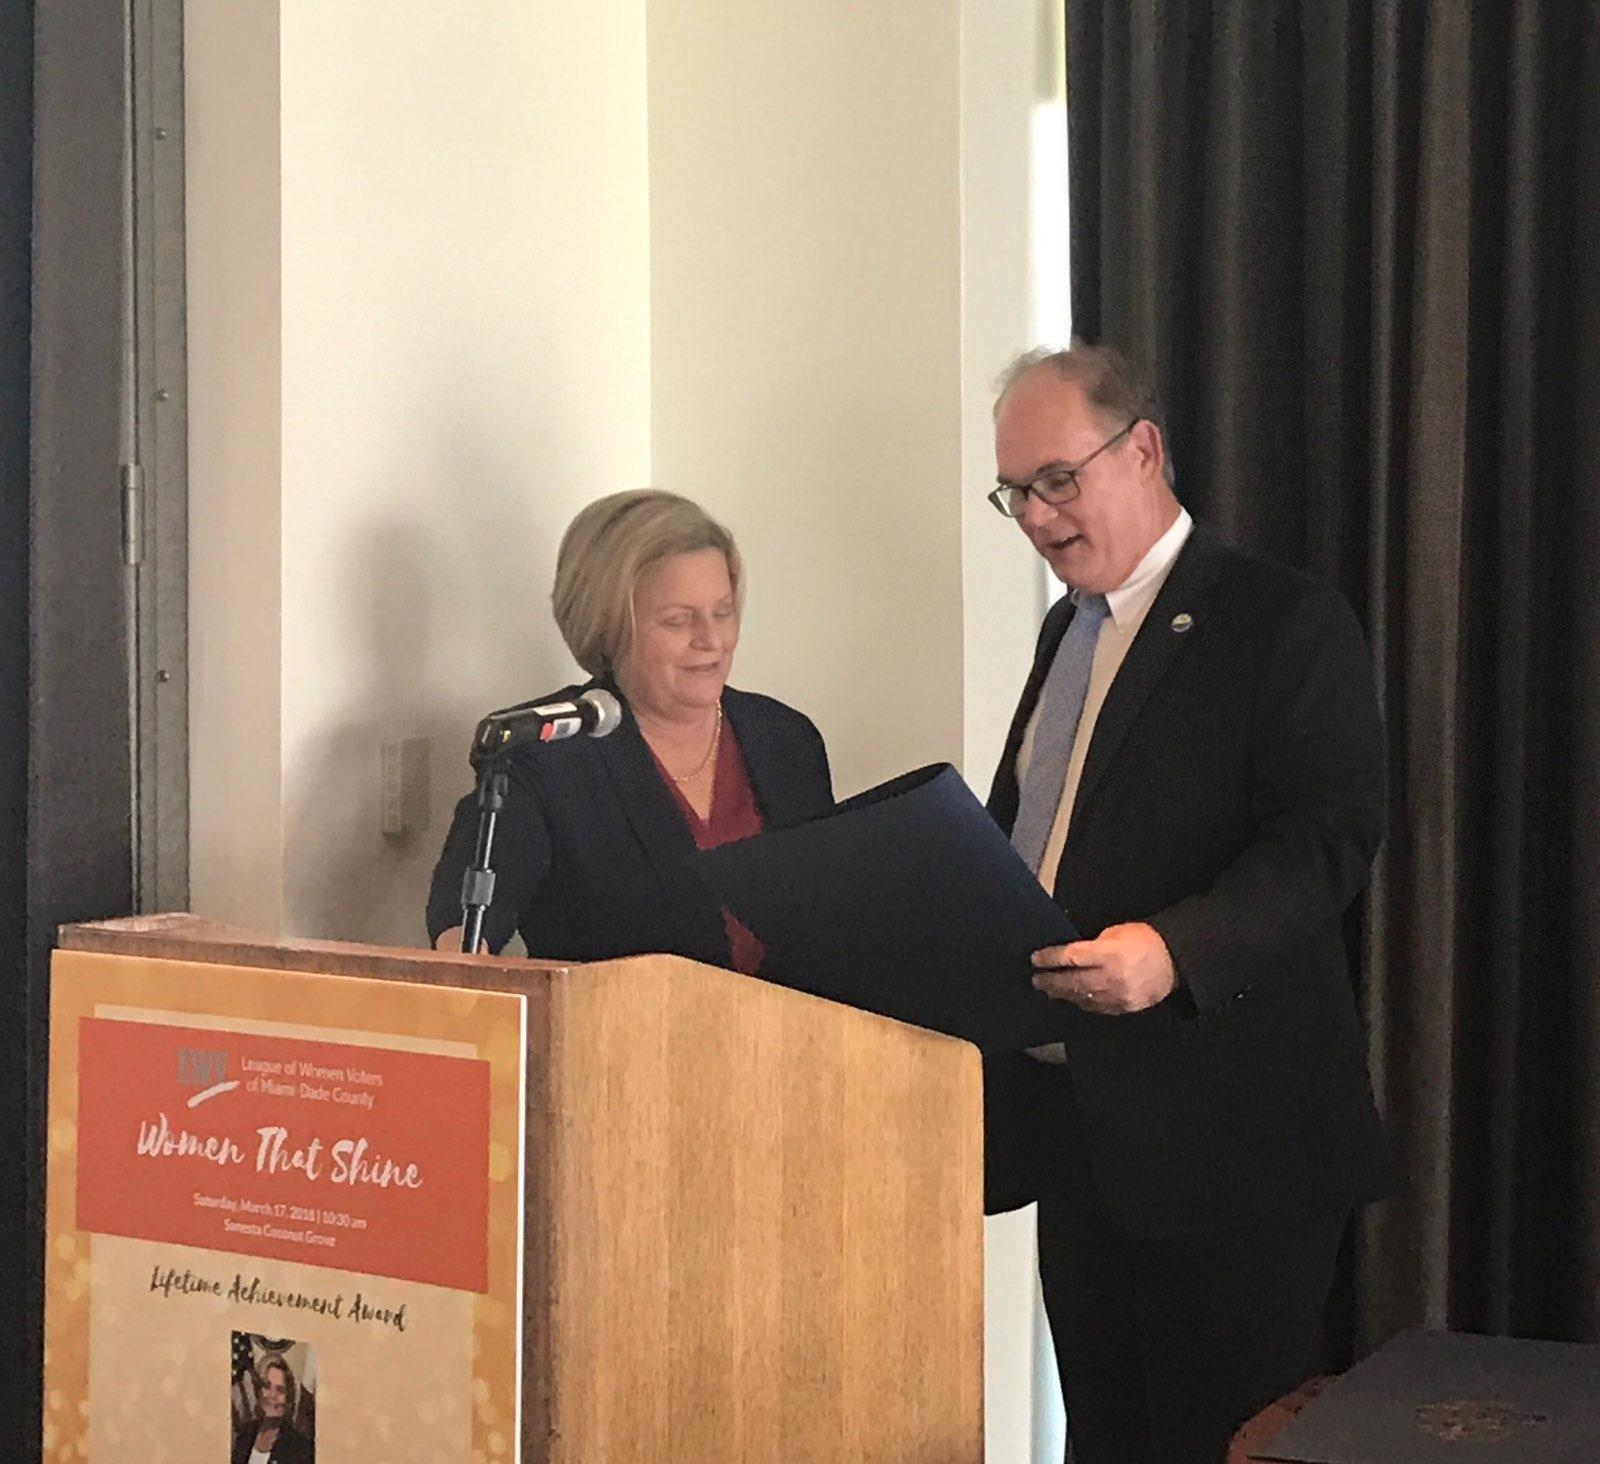 Mayor Awards Ileana Ros-Lehtinen